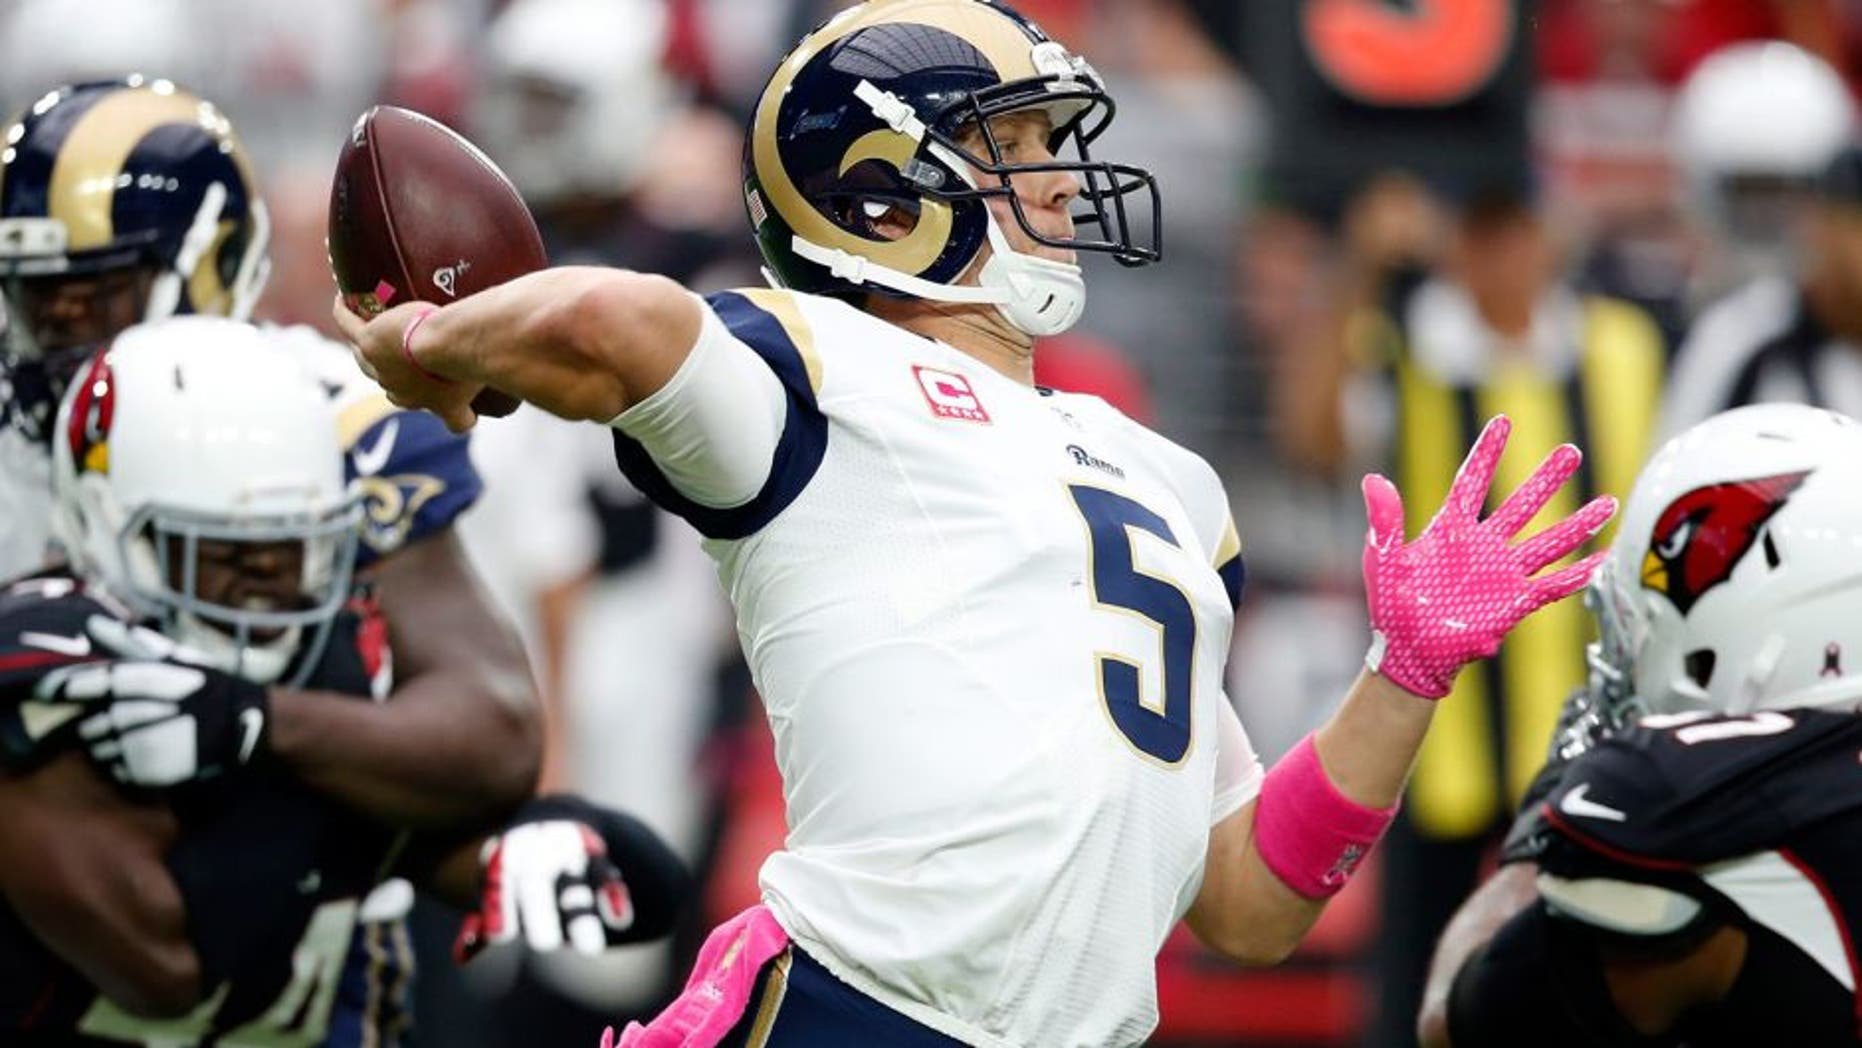 St. Louis Rams quarterback Nick Foles (5) throws against the Arizona Cardinals during the first half of an NFL football game, Sunday, Oct. 4, 2015, in Glendale, Ariz. (AP Photo/Ross D. Franklin)